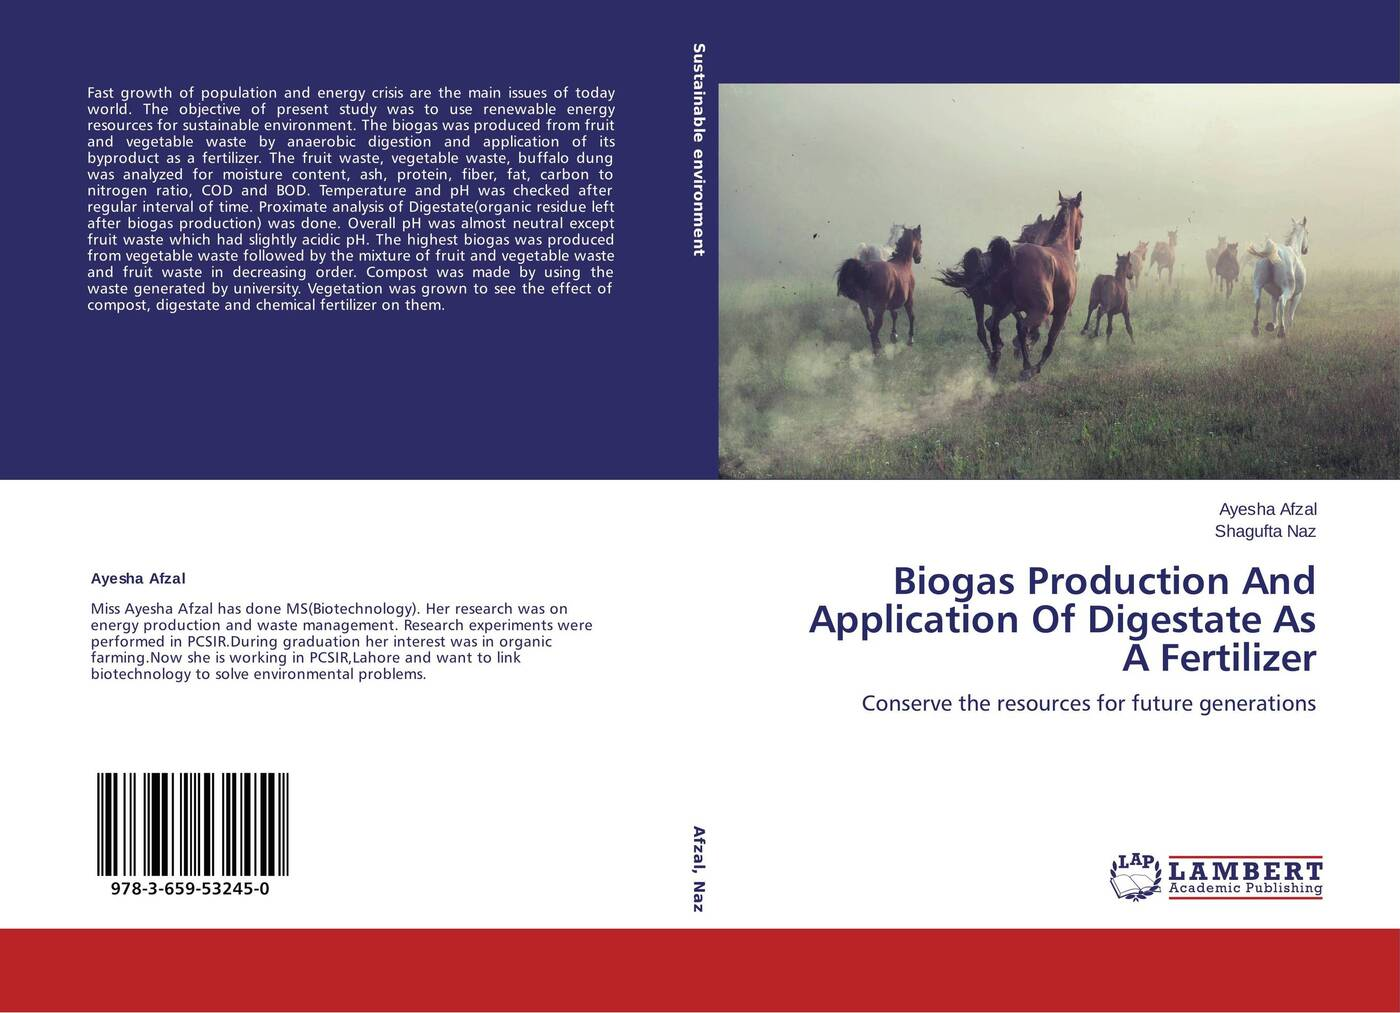 Ayesha Afzal and Shagufta Naz Biogas Production And Application Of Digestate As A Fertilizer evelyn pena felix it was not a waste of time